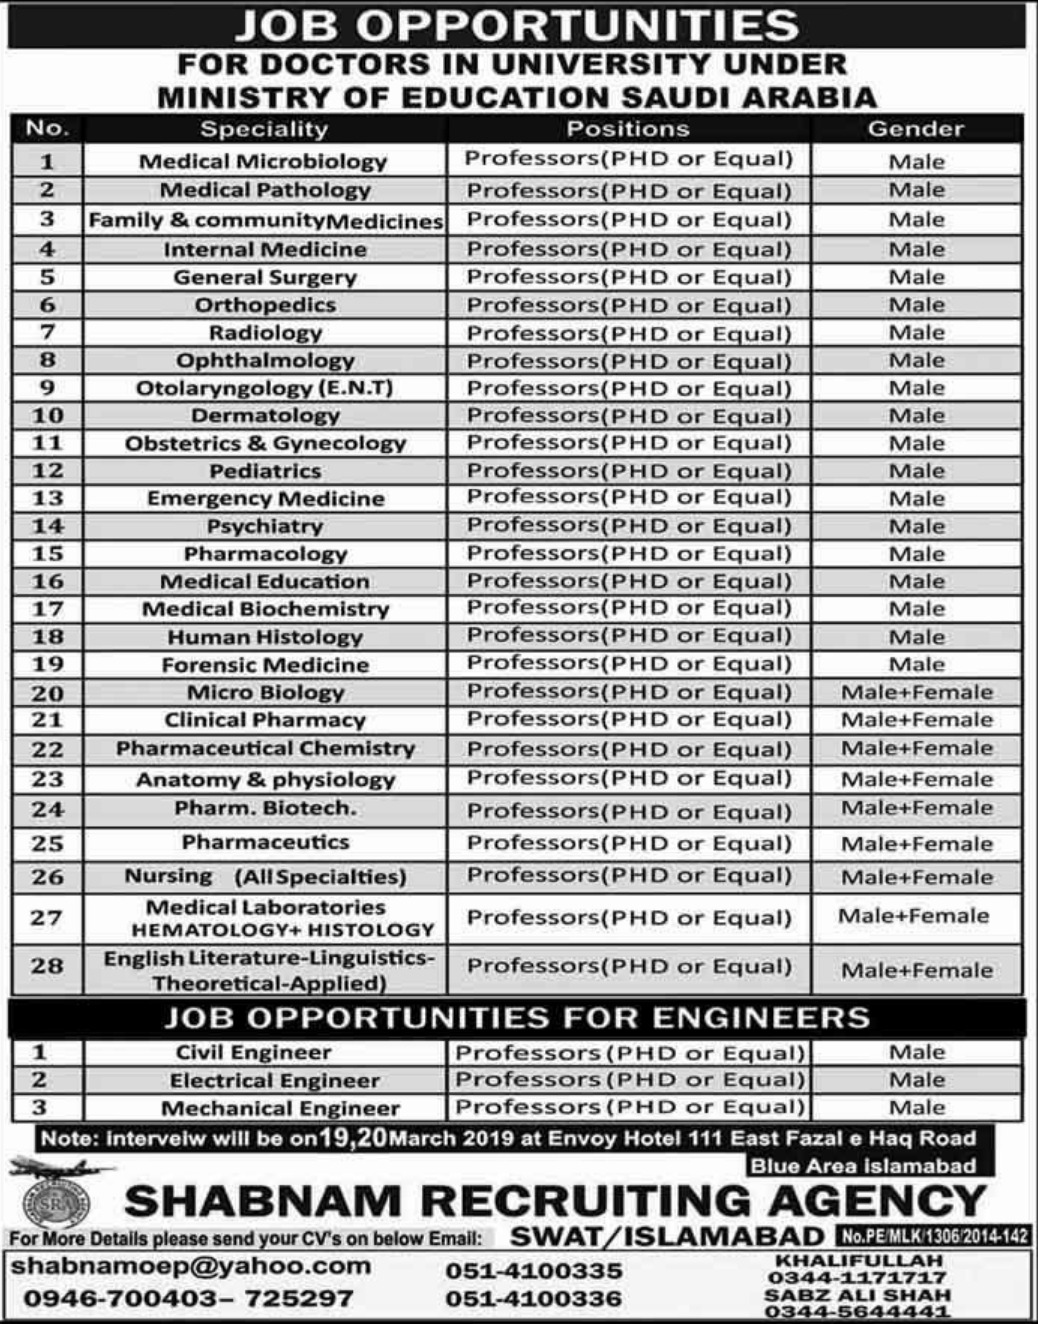 Ministry of Education Saudi Arabia Jobs 2019 Doctors and Engineers Latest